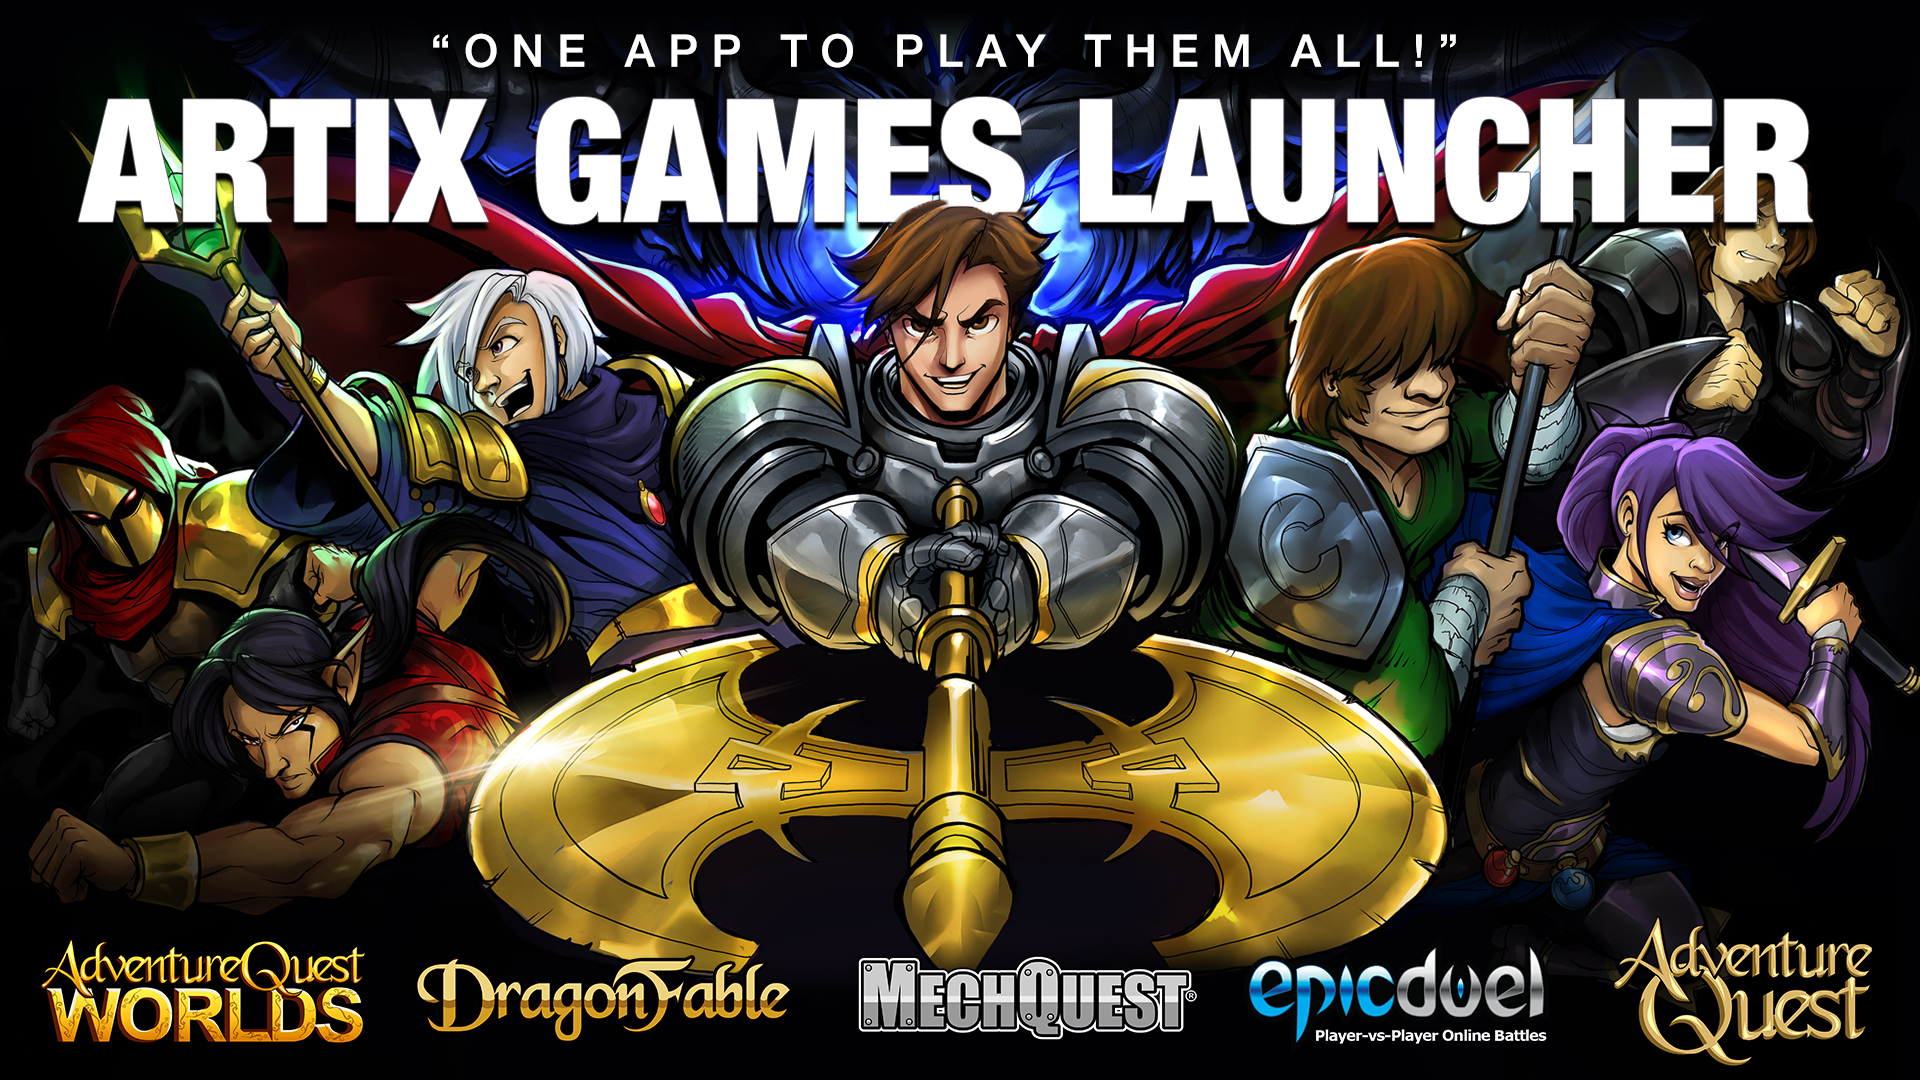 Play using the Artix Games Launcher